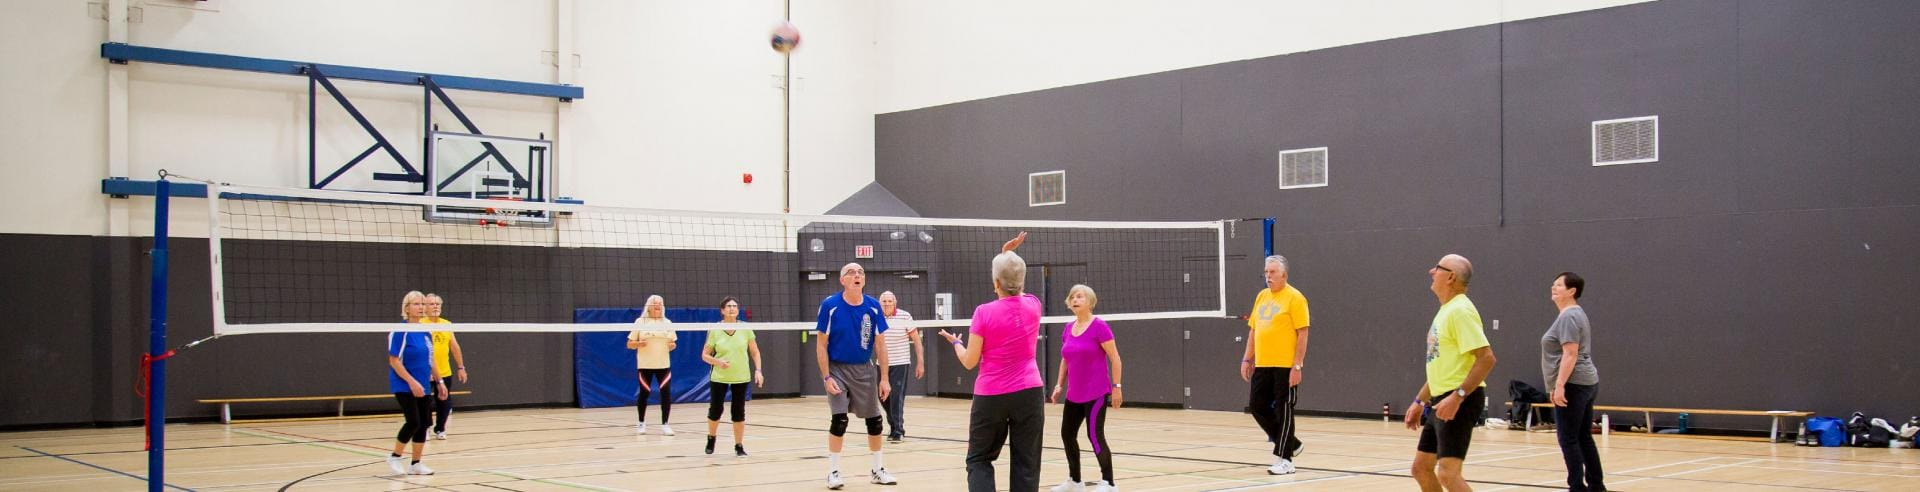 Community Centre Volleyball